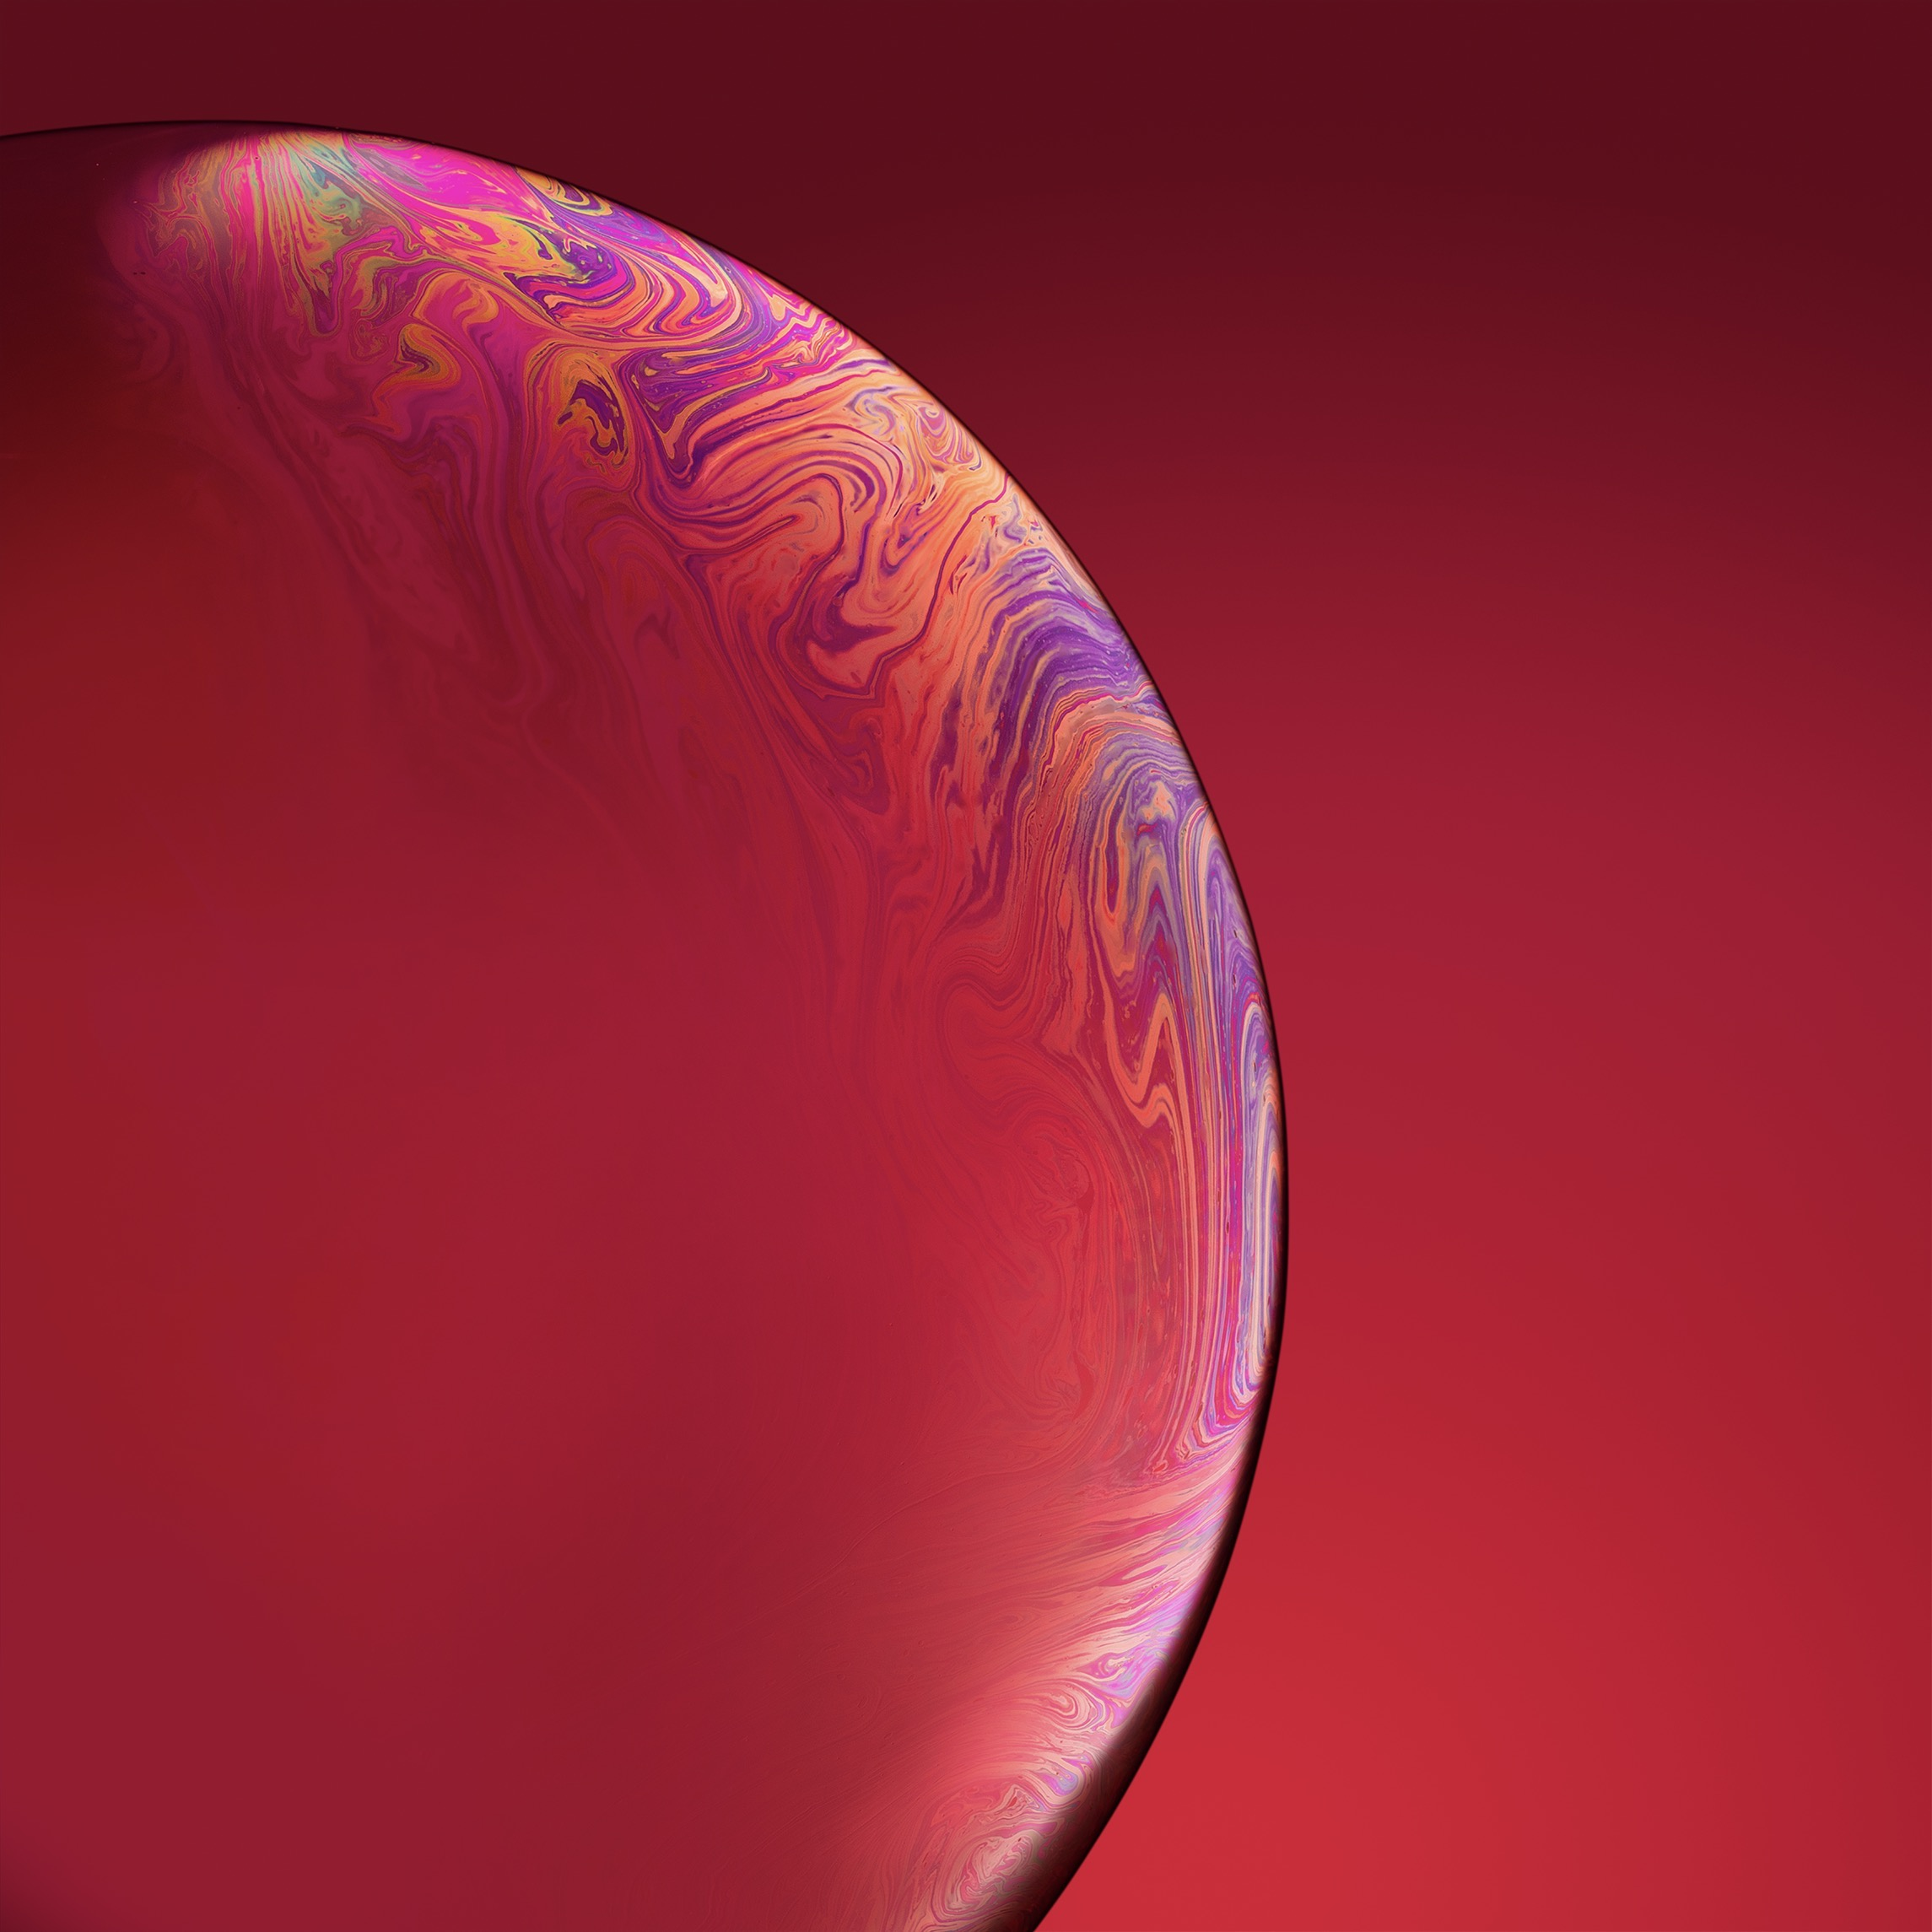 to set the iphone xr wallpapers as your wallpaper